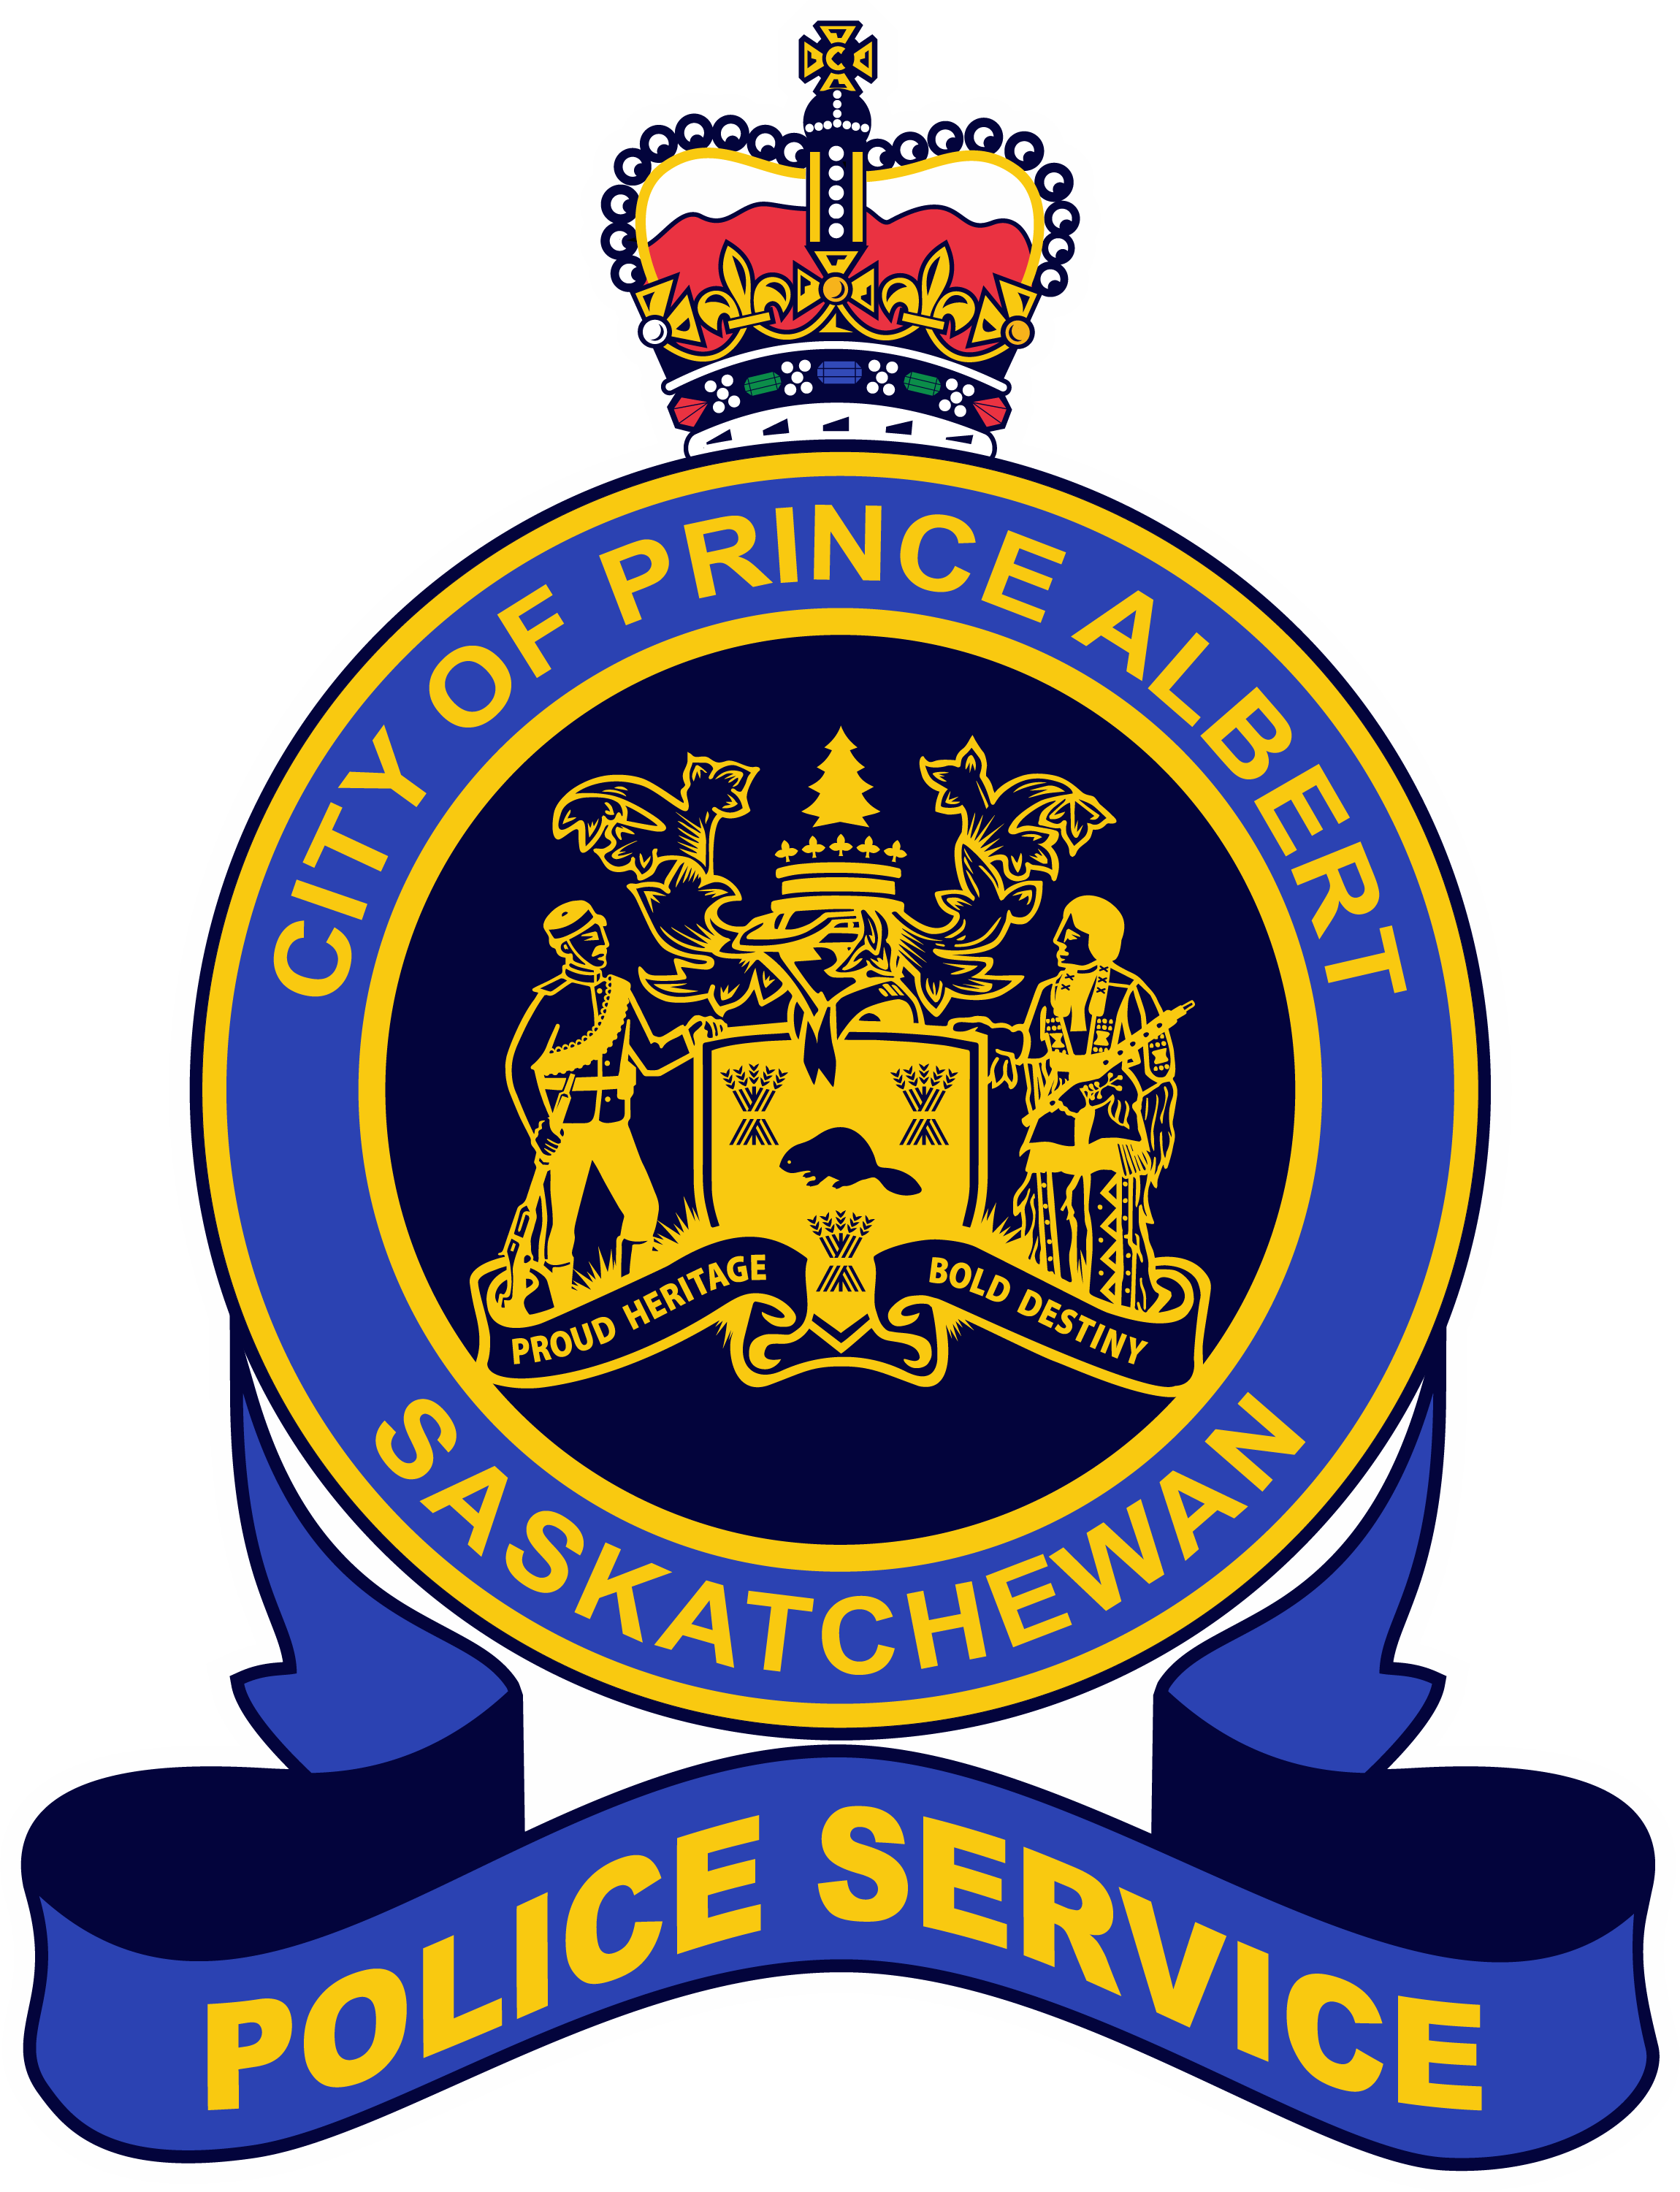 Media Release - Prince Albert Police Service Warning Public About CRA Telephone Scam